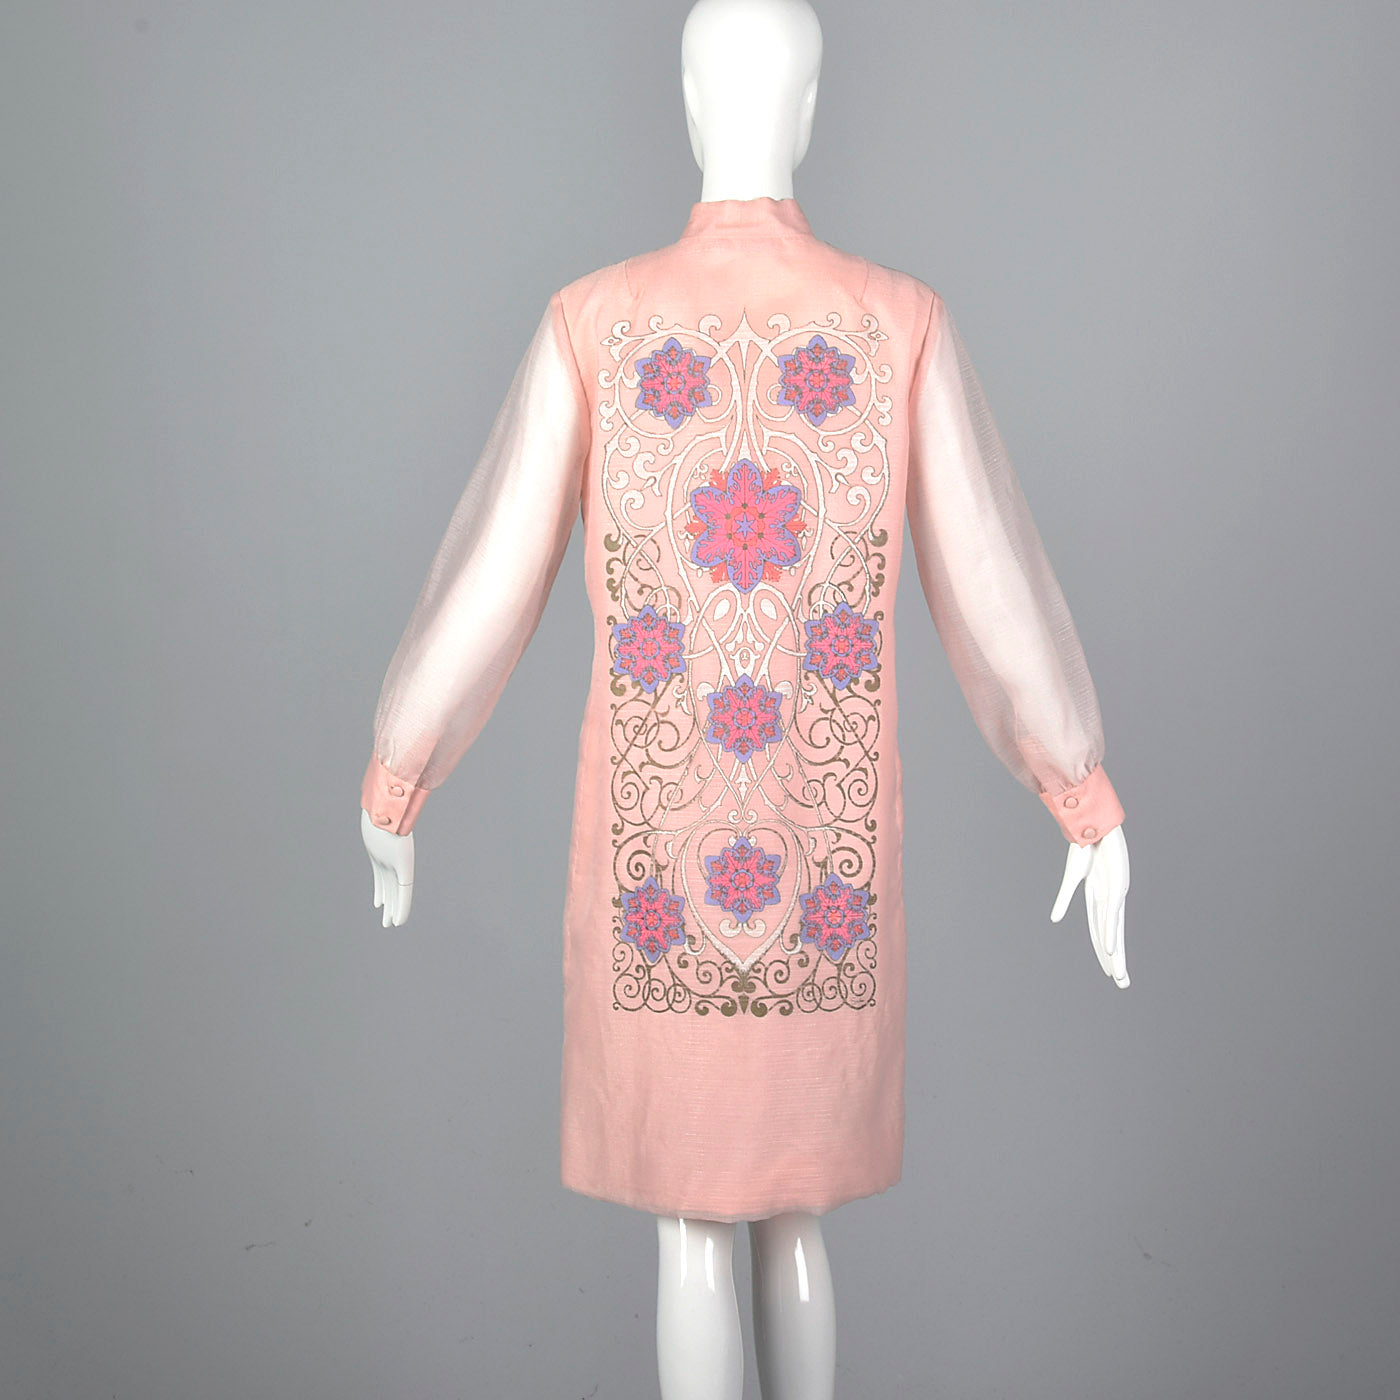 1970s Alfred Shaheen Pink Shift Dress with Sheer Sleeves